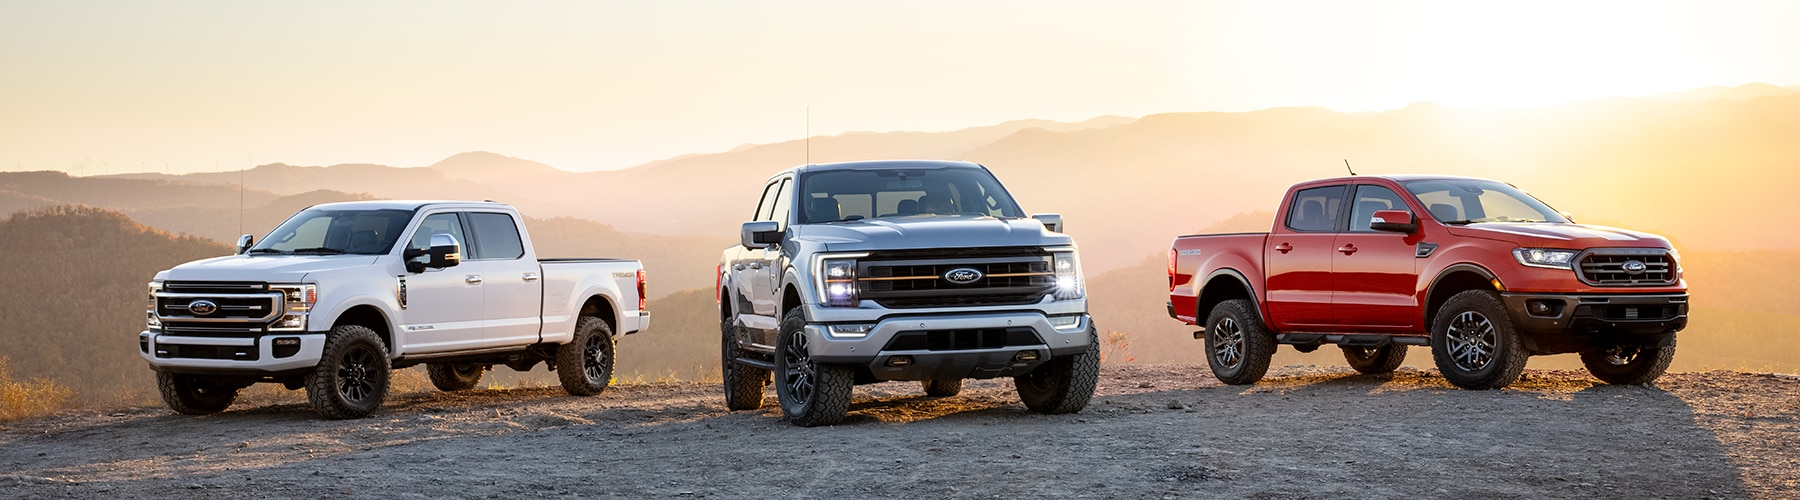 2021 Ford Truck Lineup